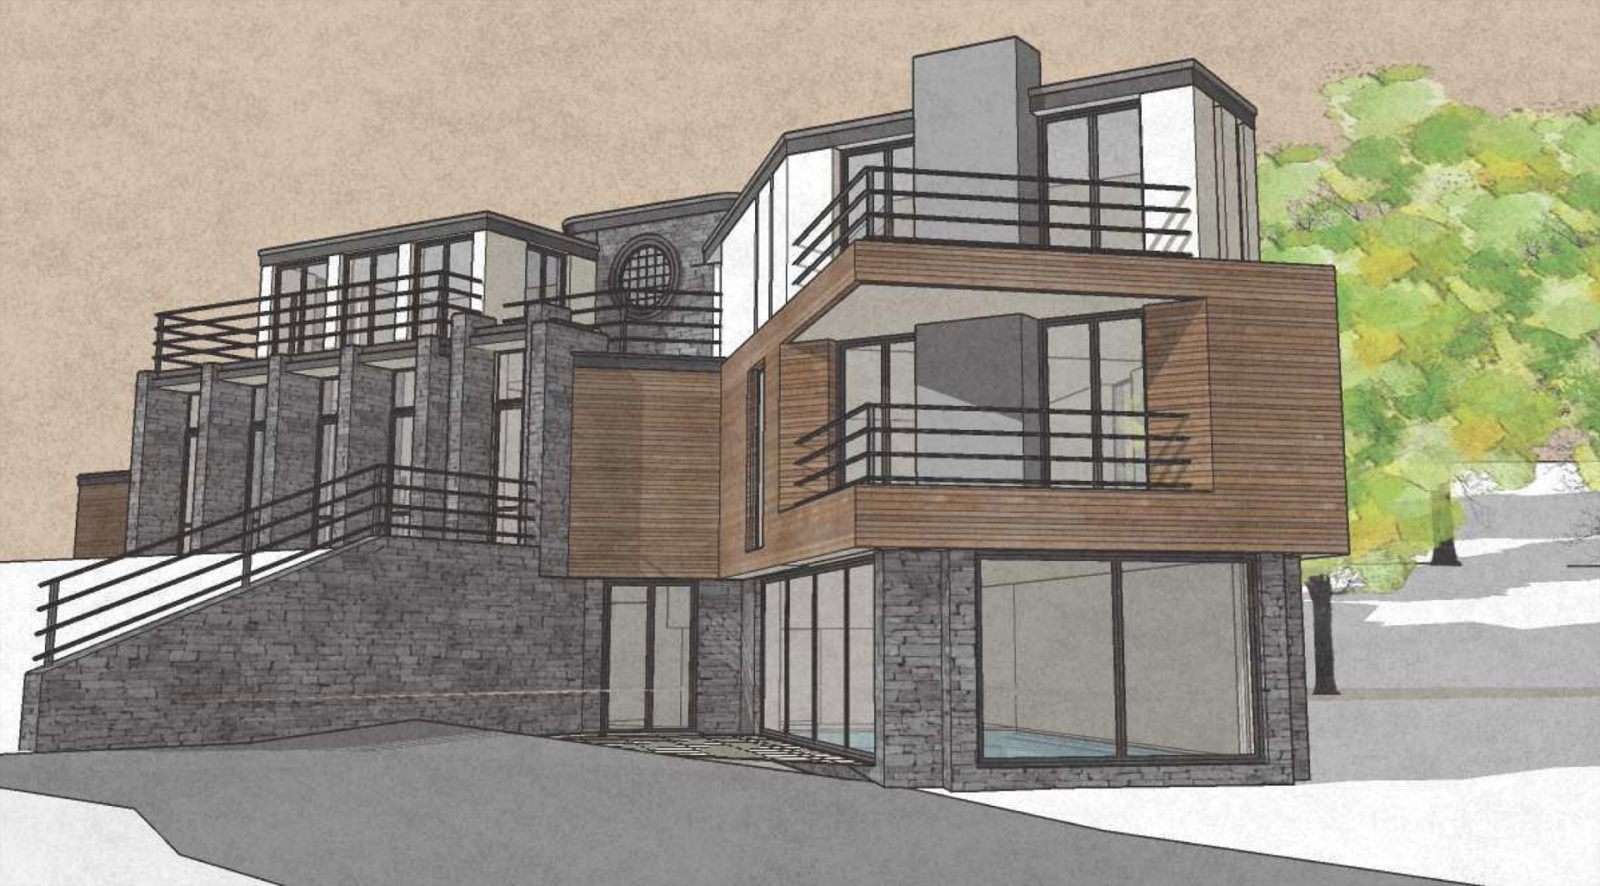 RSA engaged to design cost efficiencies to new build house at Furze Park. – Rud Sawers Architects, Devon